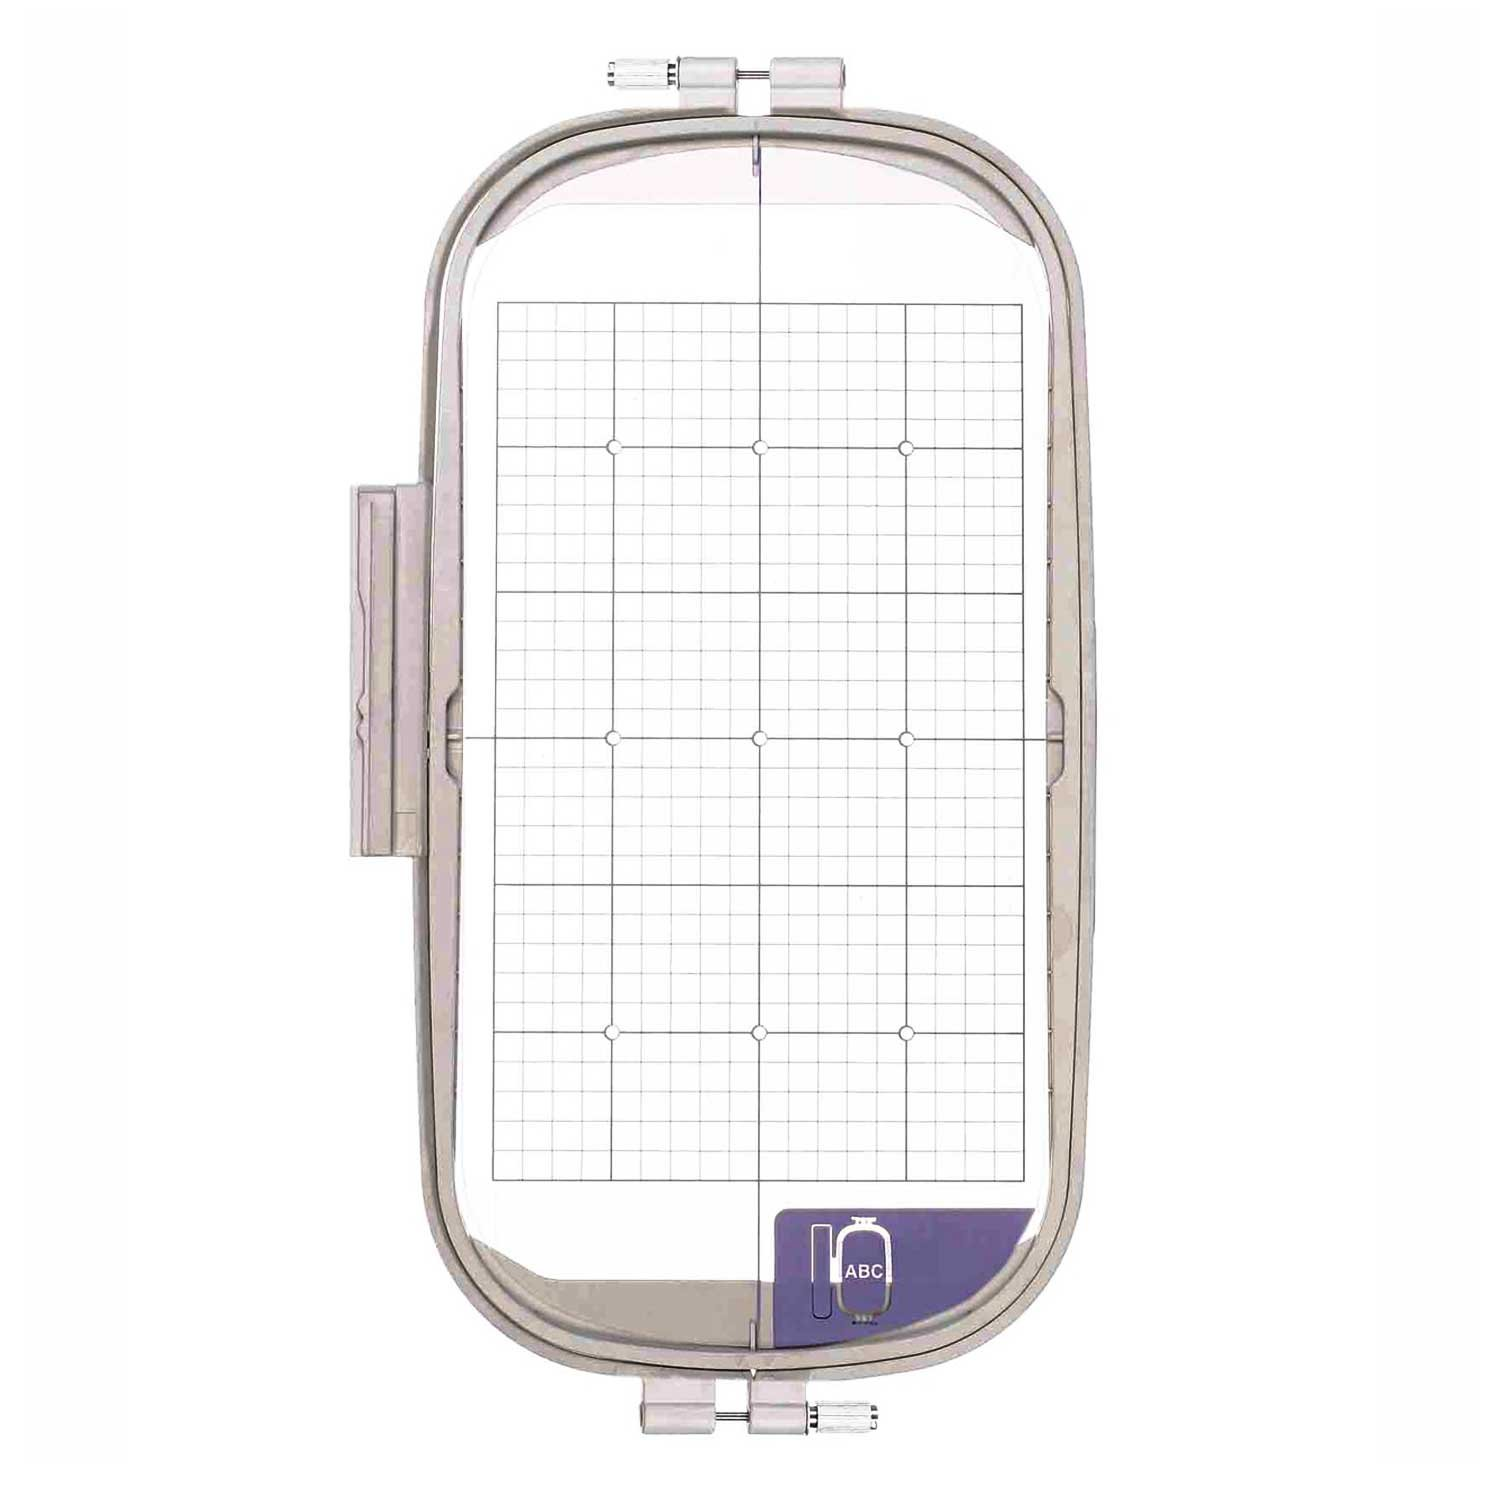 Brother Extra Large Embroidery Hoop-  8x12 300x180mm)SA440